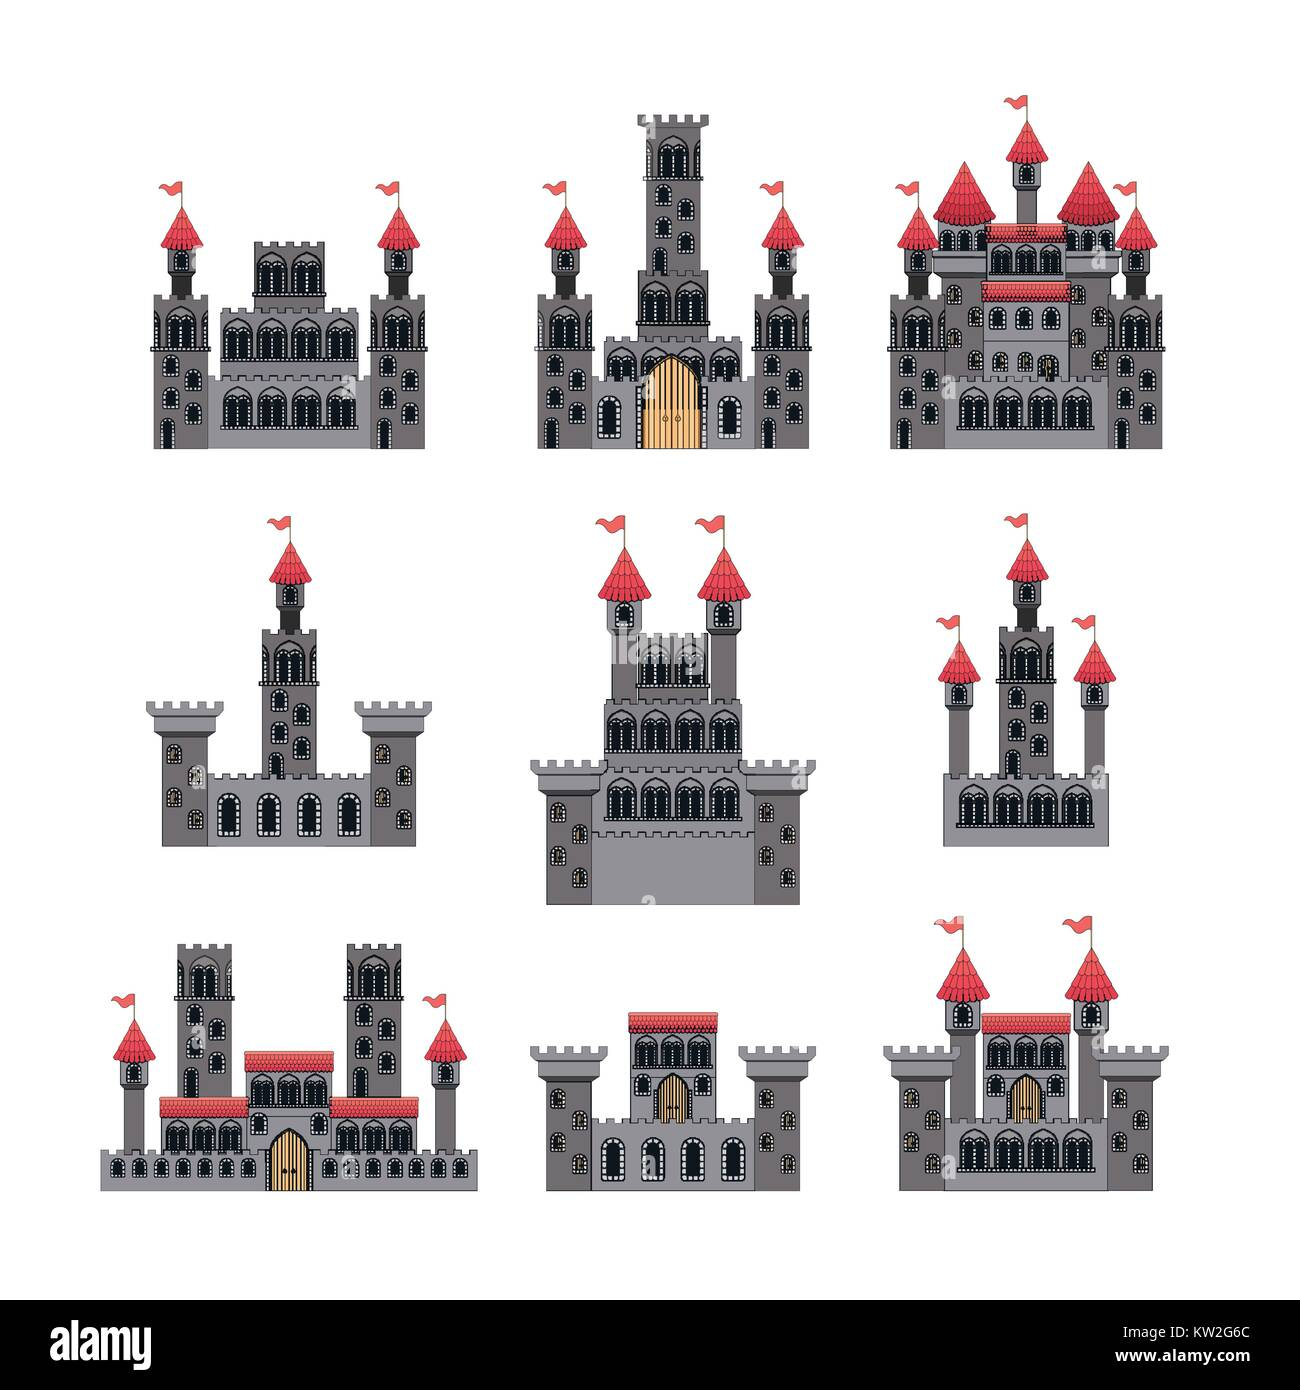 set of castles of fairy tales in white background - Stock Image